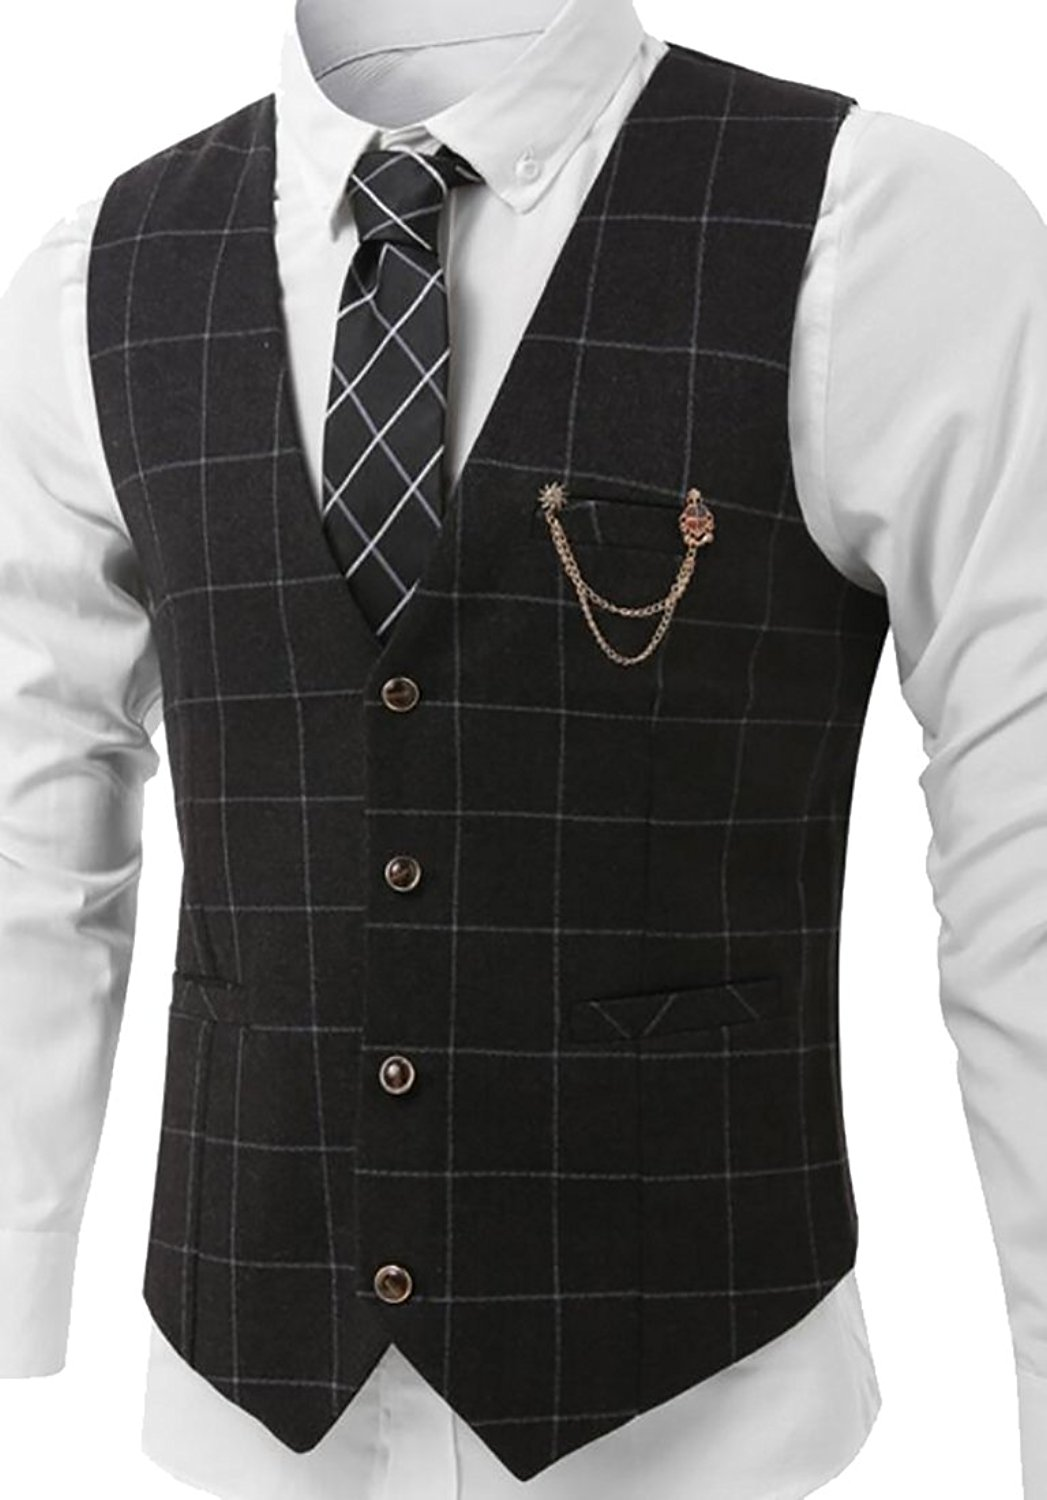 7b845eb2a8f Get Quotations · YUNY Mens Premium Plaid Checked Chain Button Front Suit  Vest Waistcoat